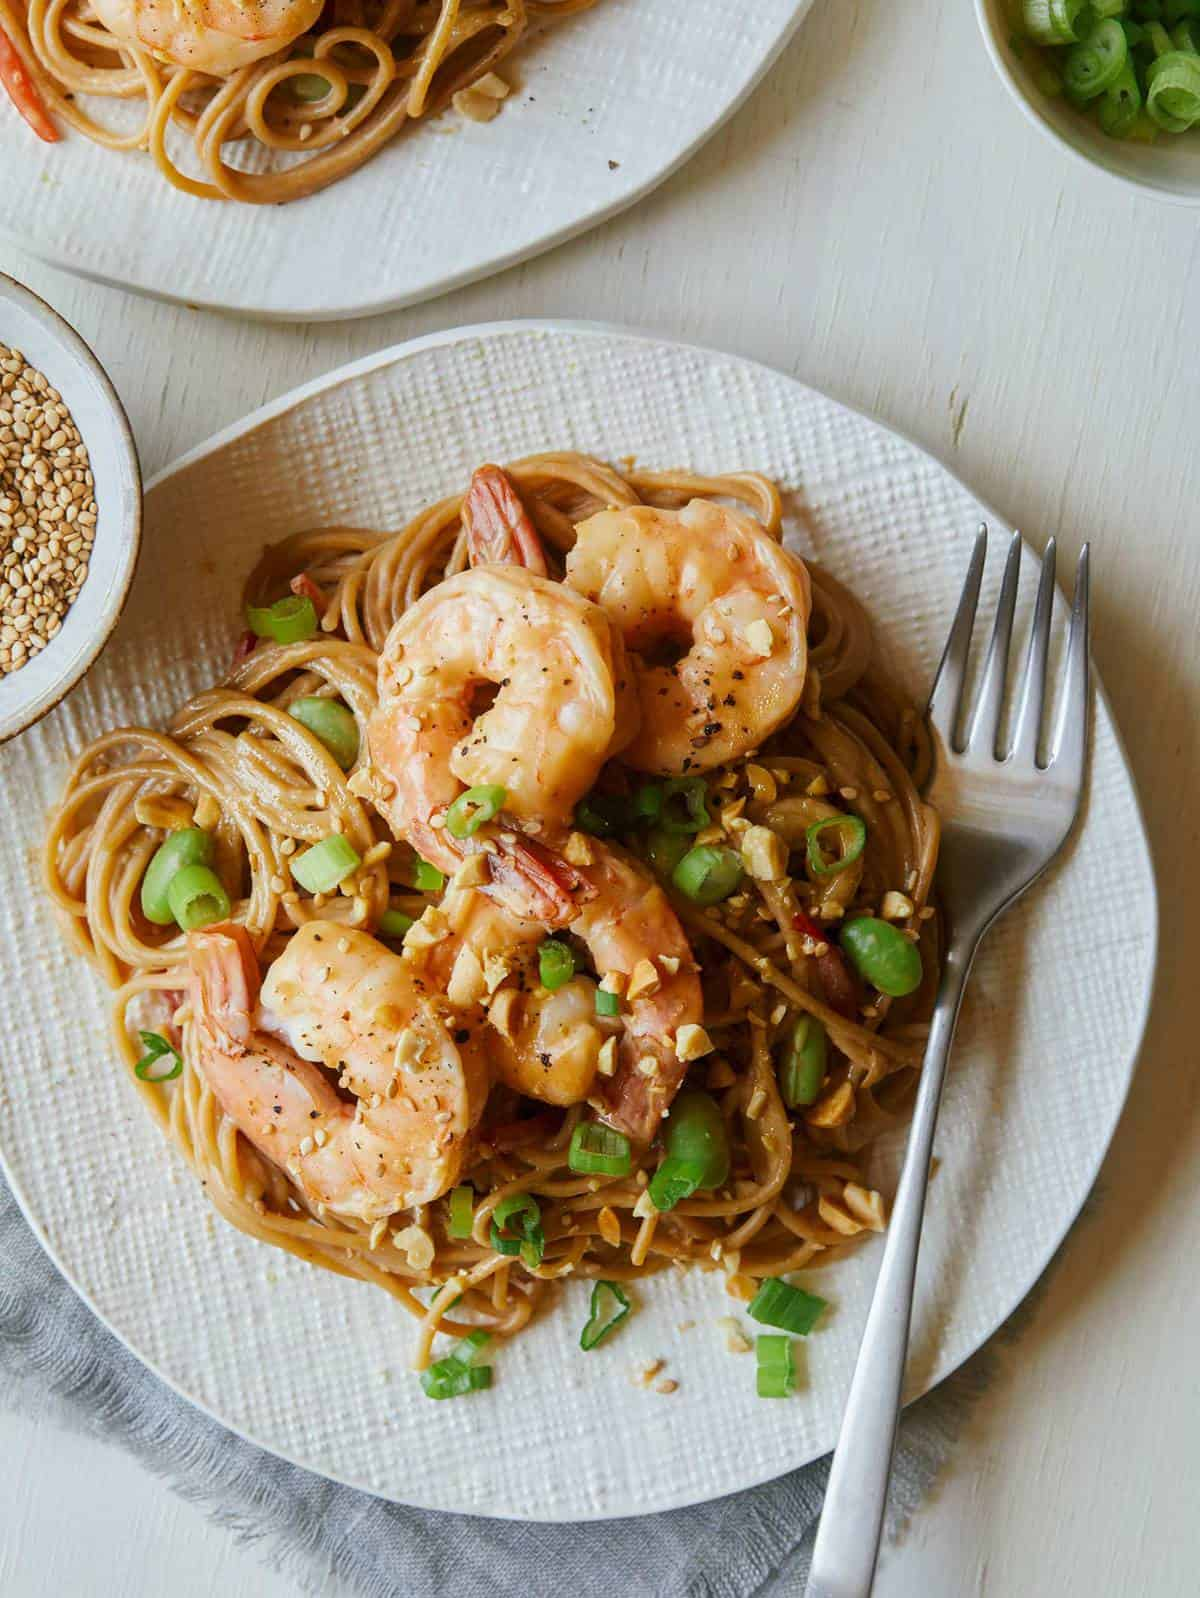 Cold Soba Noodles with shrimp and peanut sauce with a fork on the side.